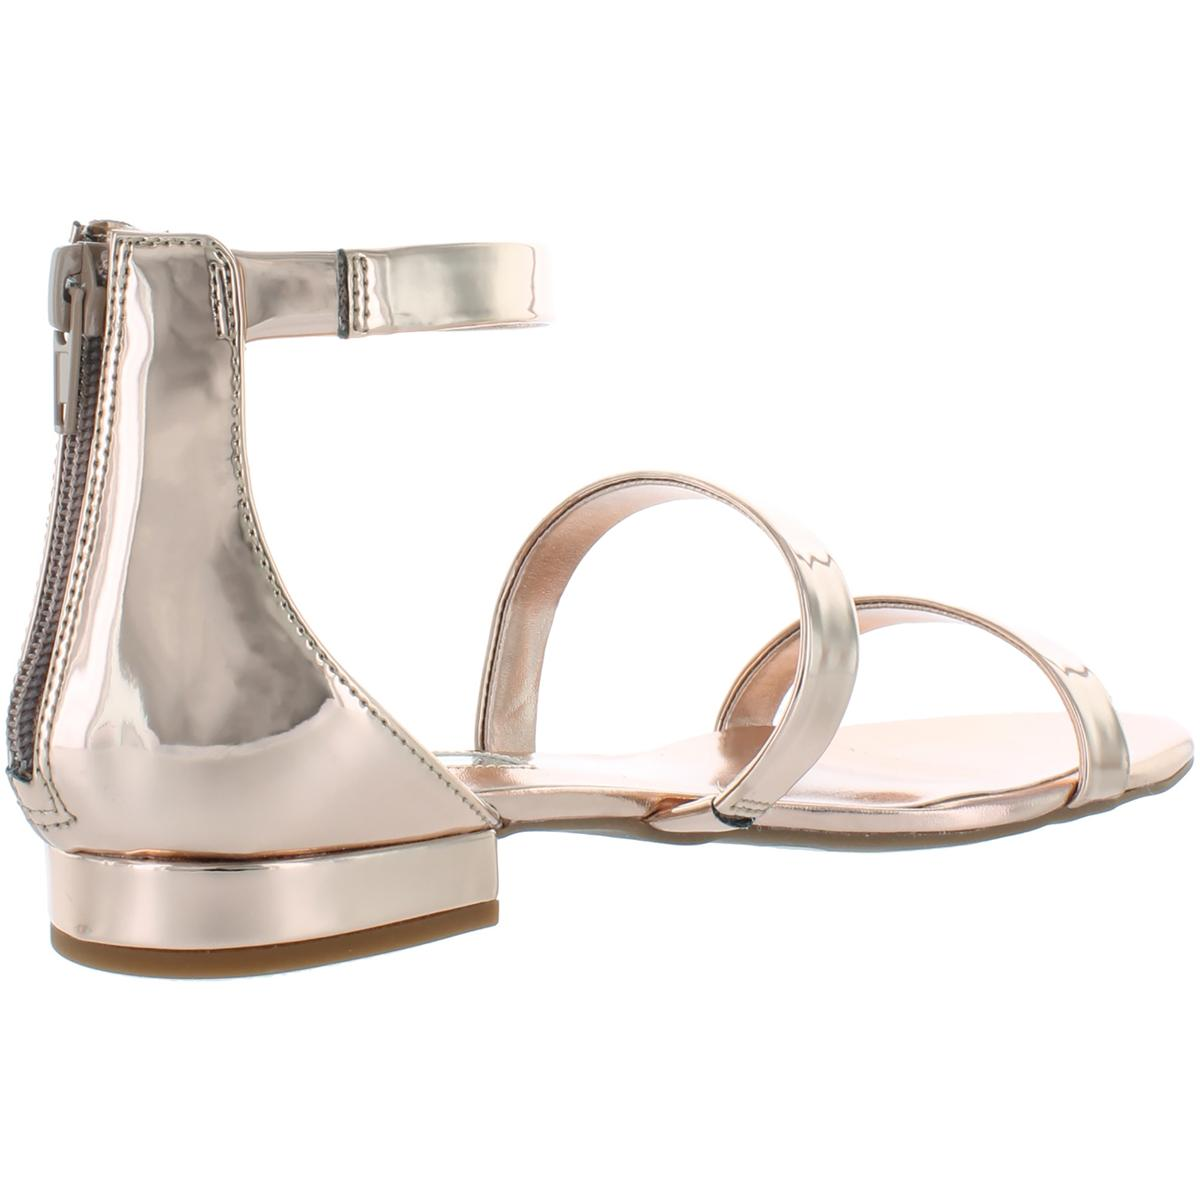 INC-Womens-Yessenia-Embossed-Ankle-Strap-Dress-Sandals-Shoes-BHFO-8555 thumbnail 8